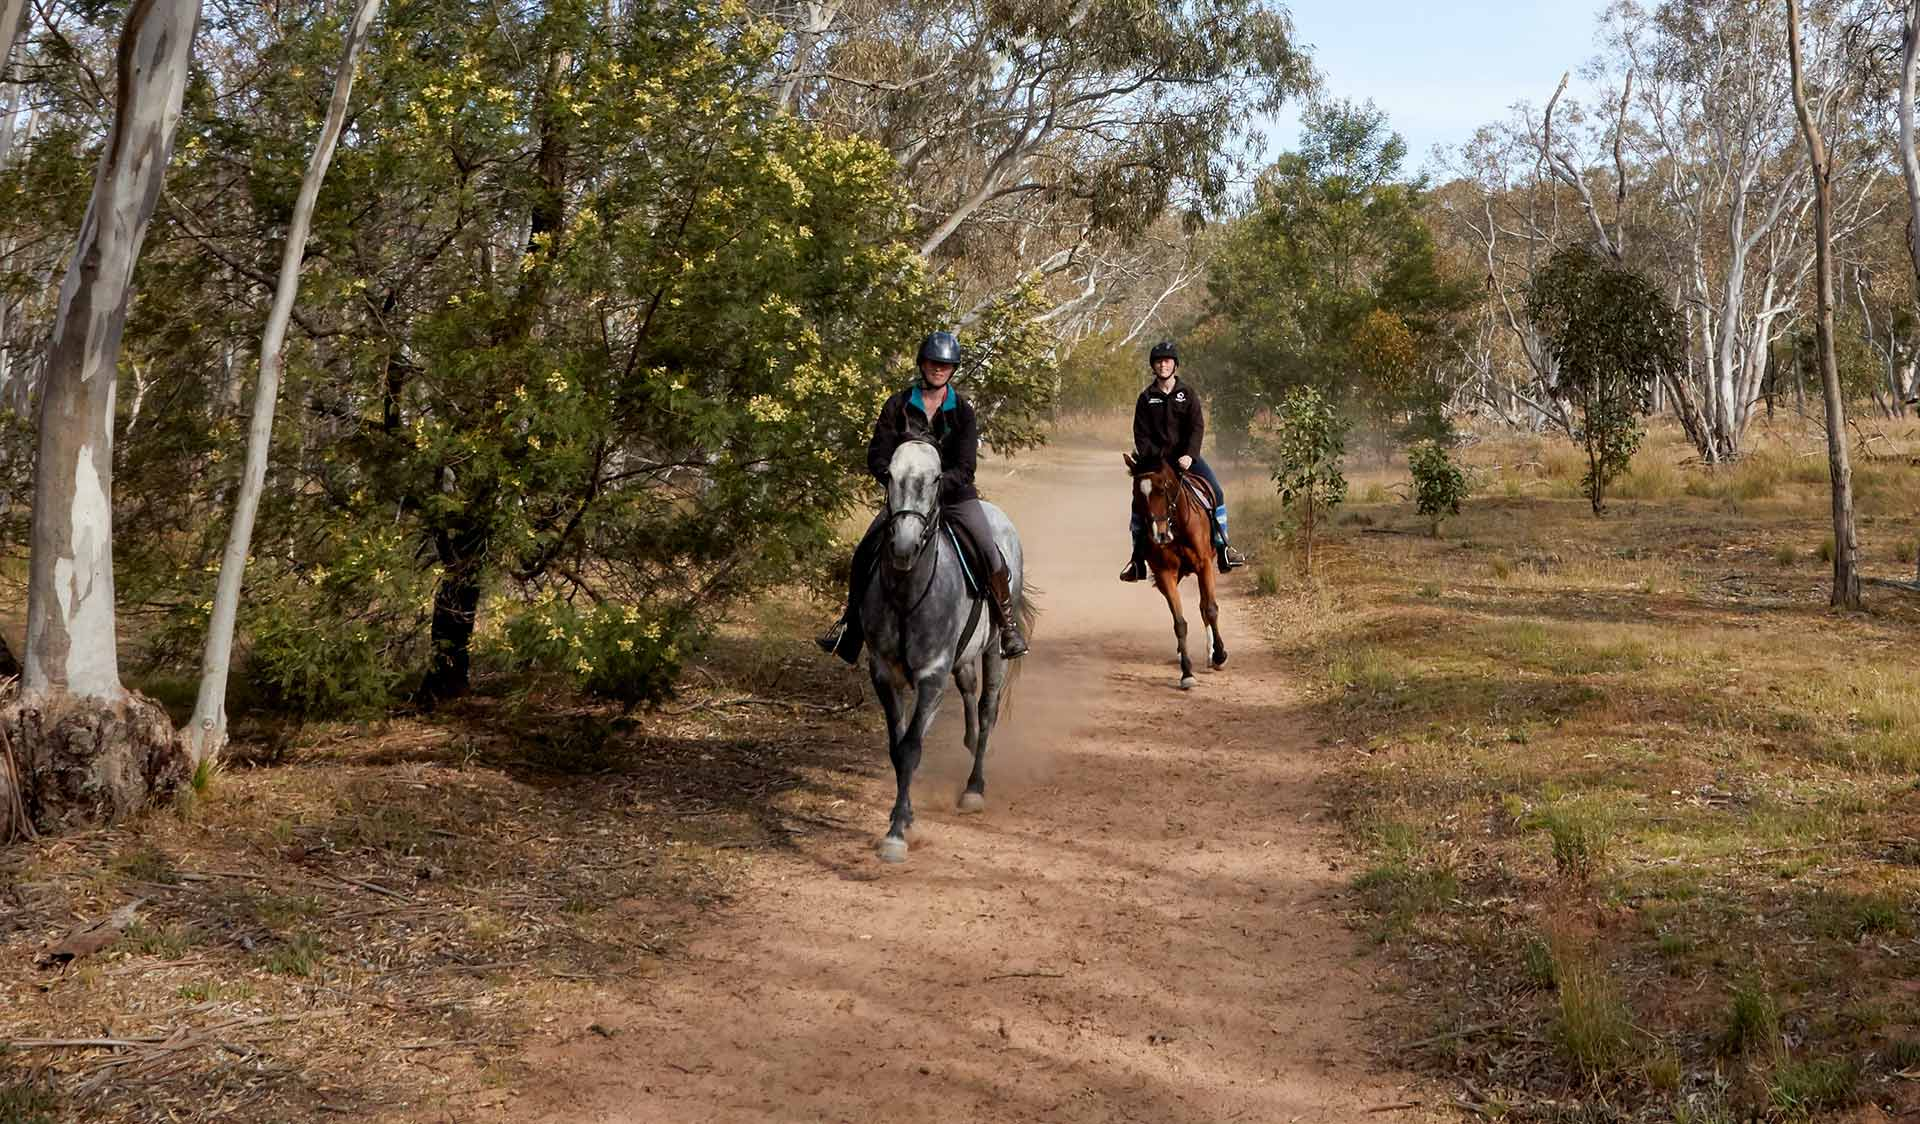 Two women ride horses along a dirt path in the You Yangs Regional Park.